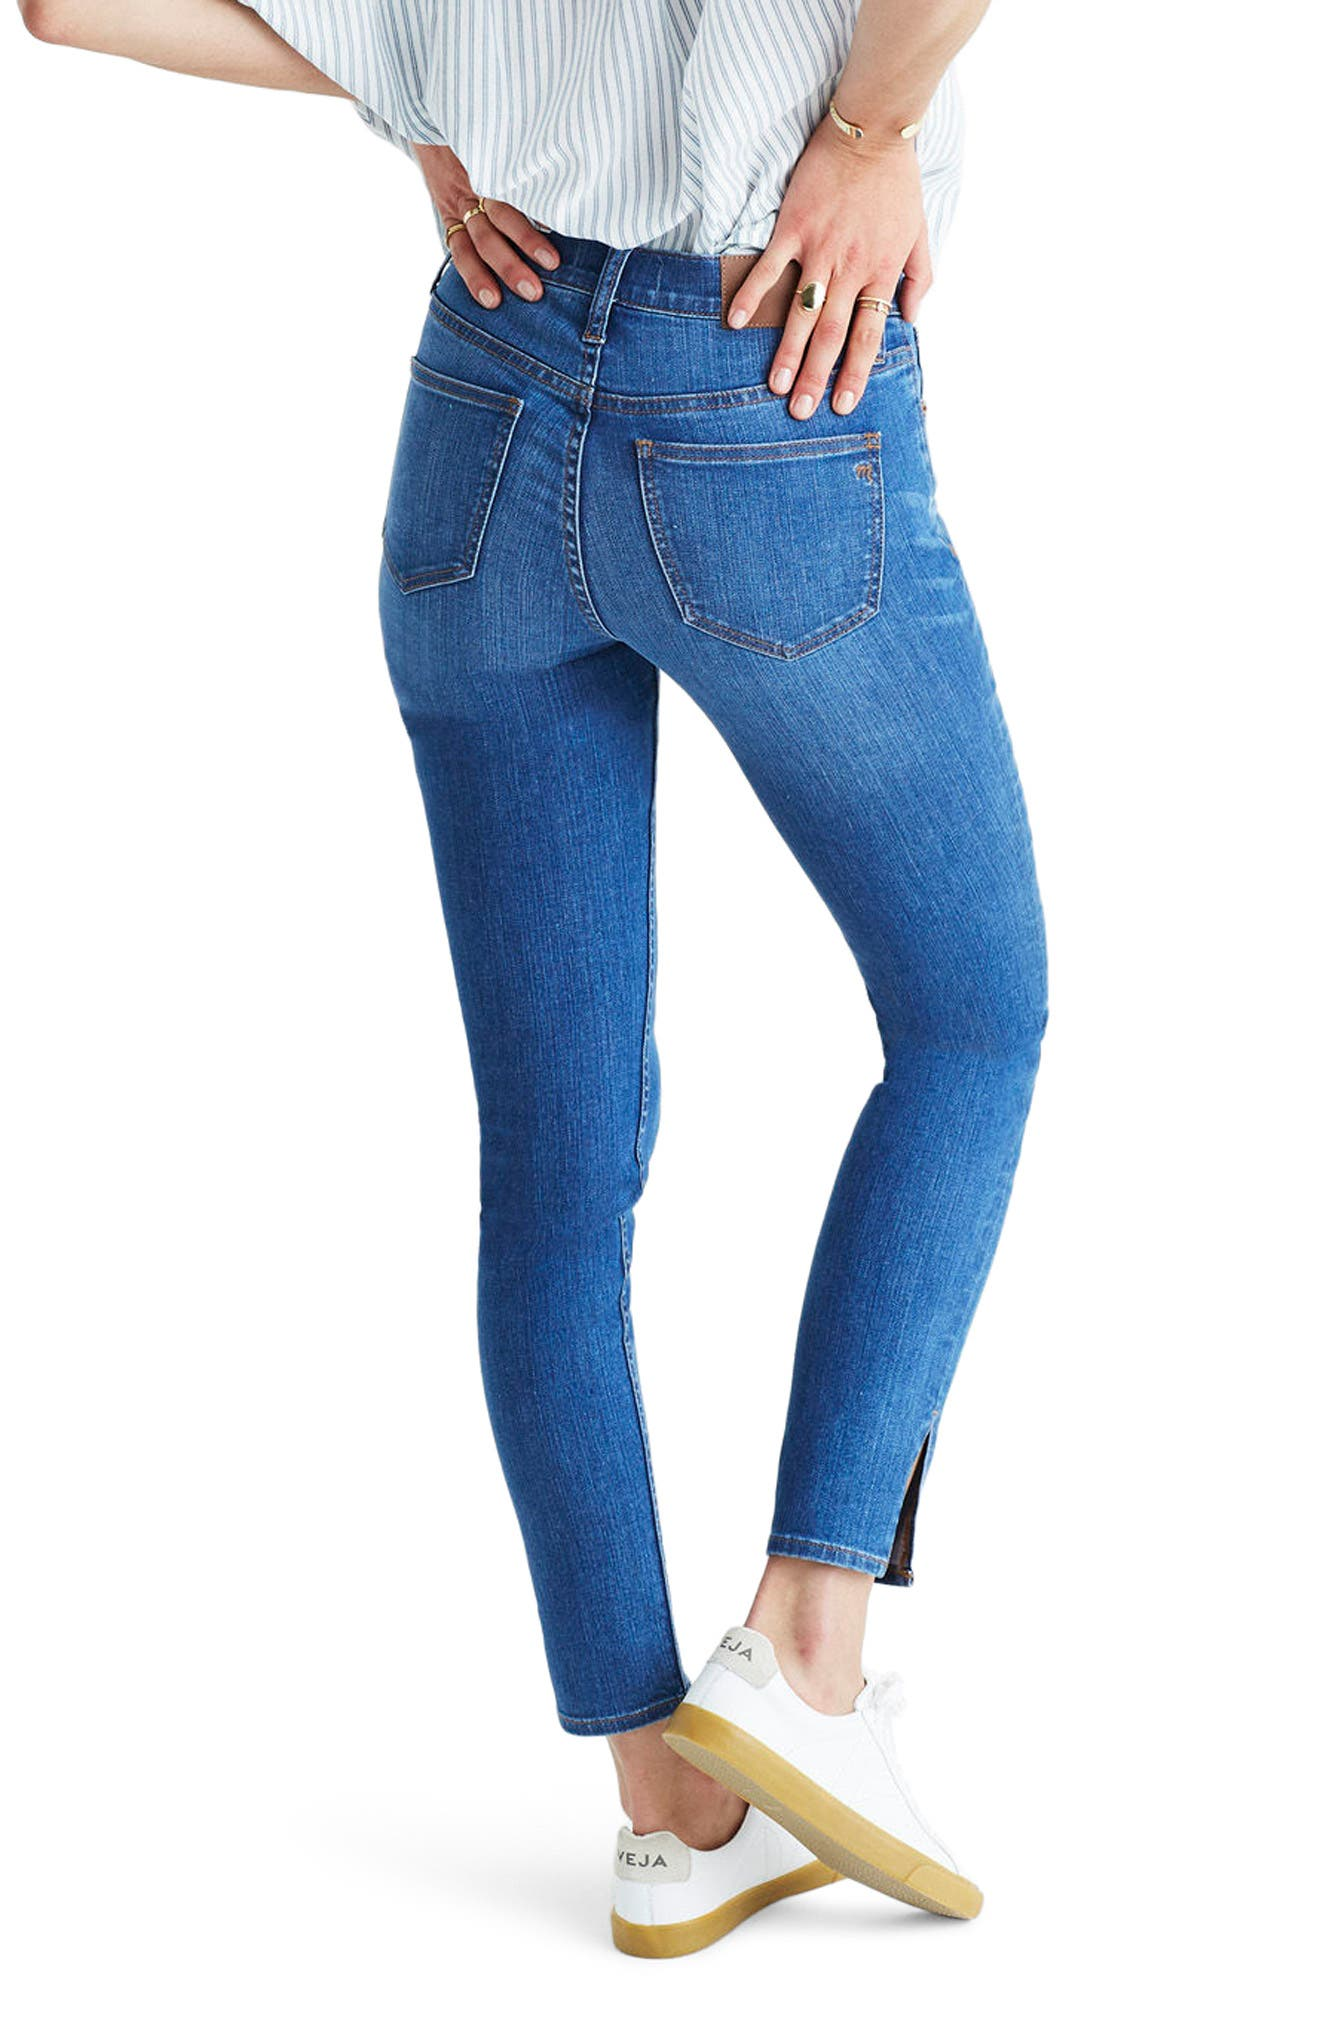 MADEWELL,                             9-Inch High-Rise Skinny Jeans: Side-Slit Edition,                             Alternate thumbnail 2, color,                             400